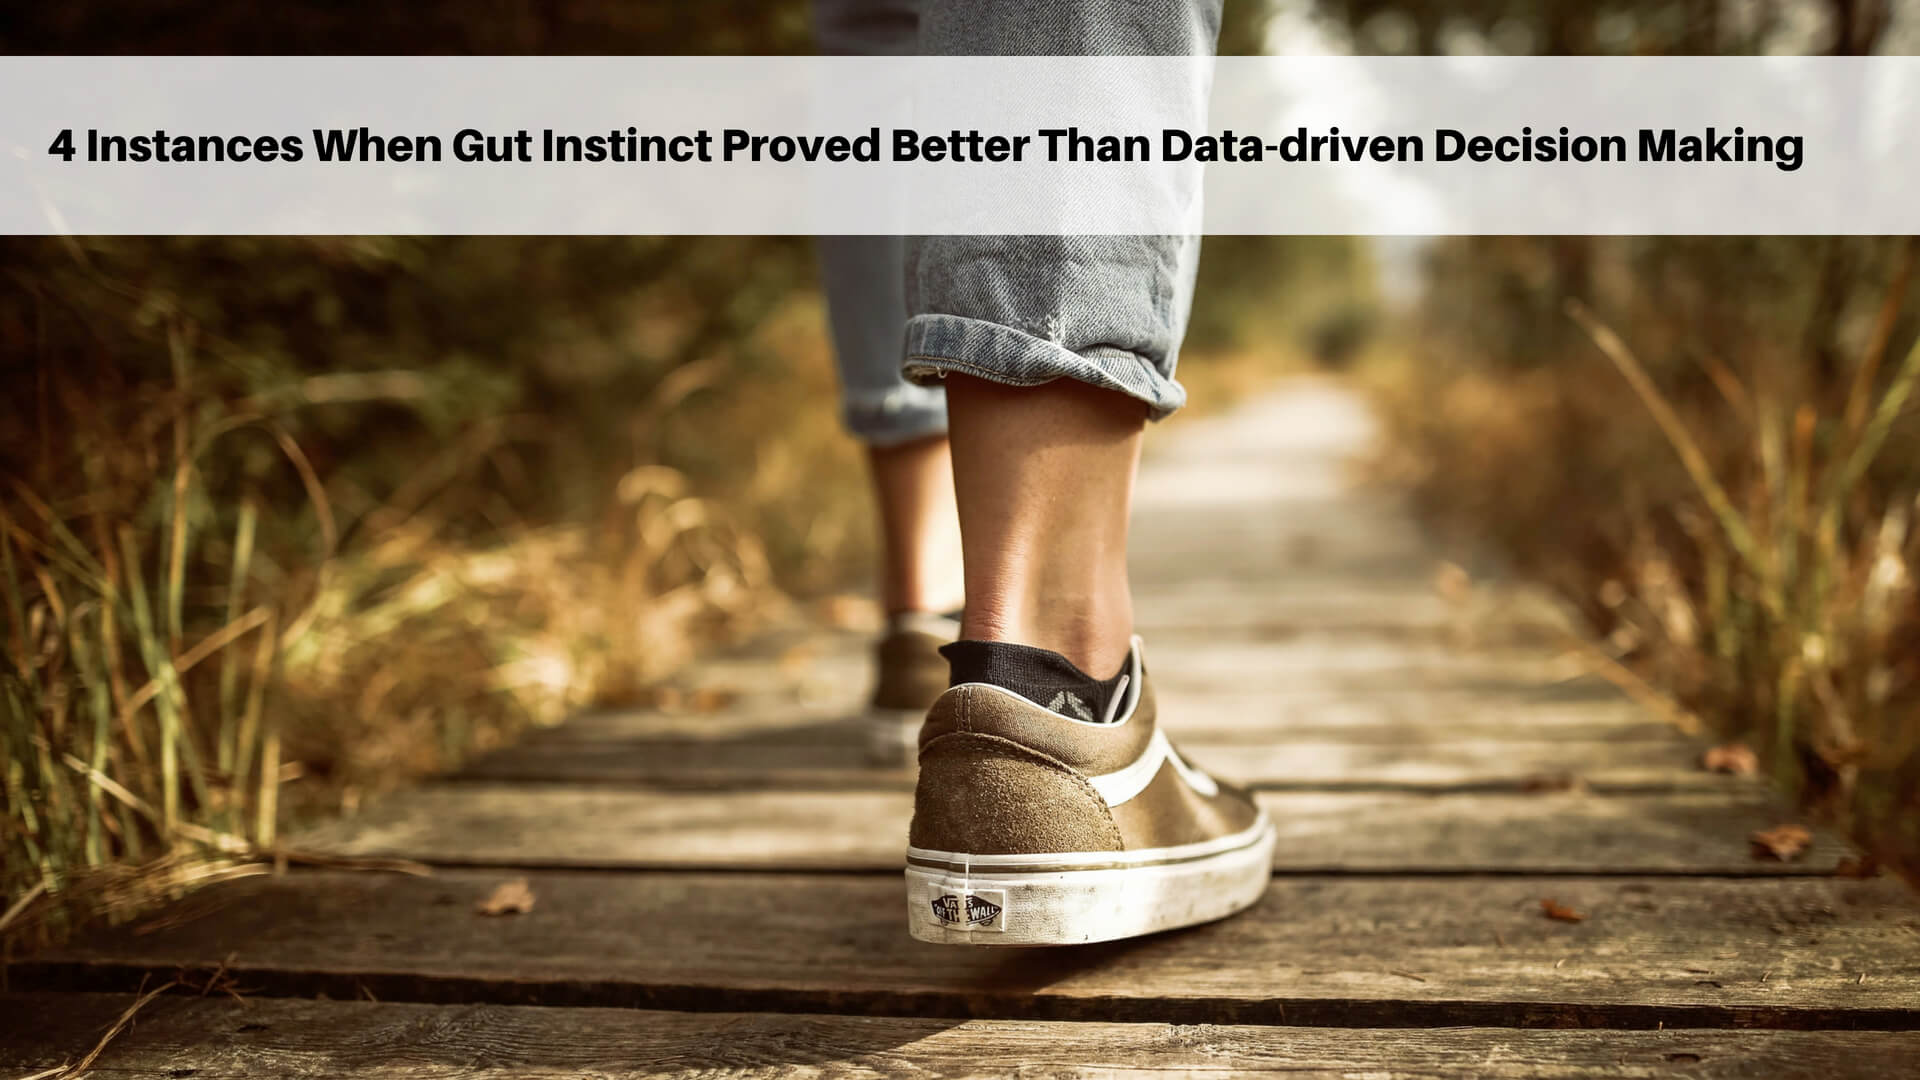 4 Instances When Gut Instinct Proved Better Than Data-Driven Decisions